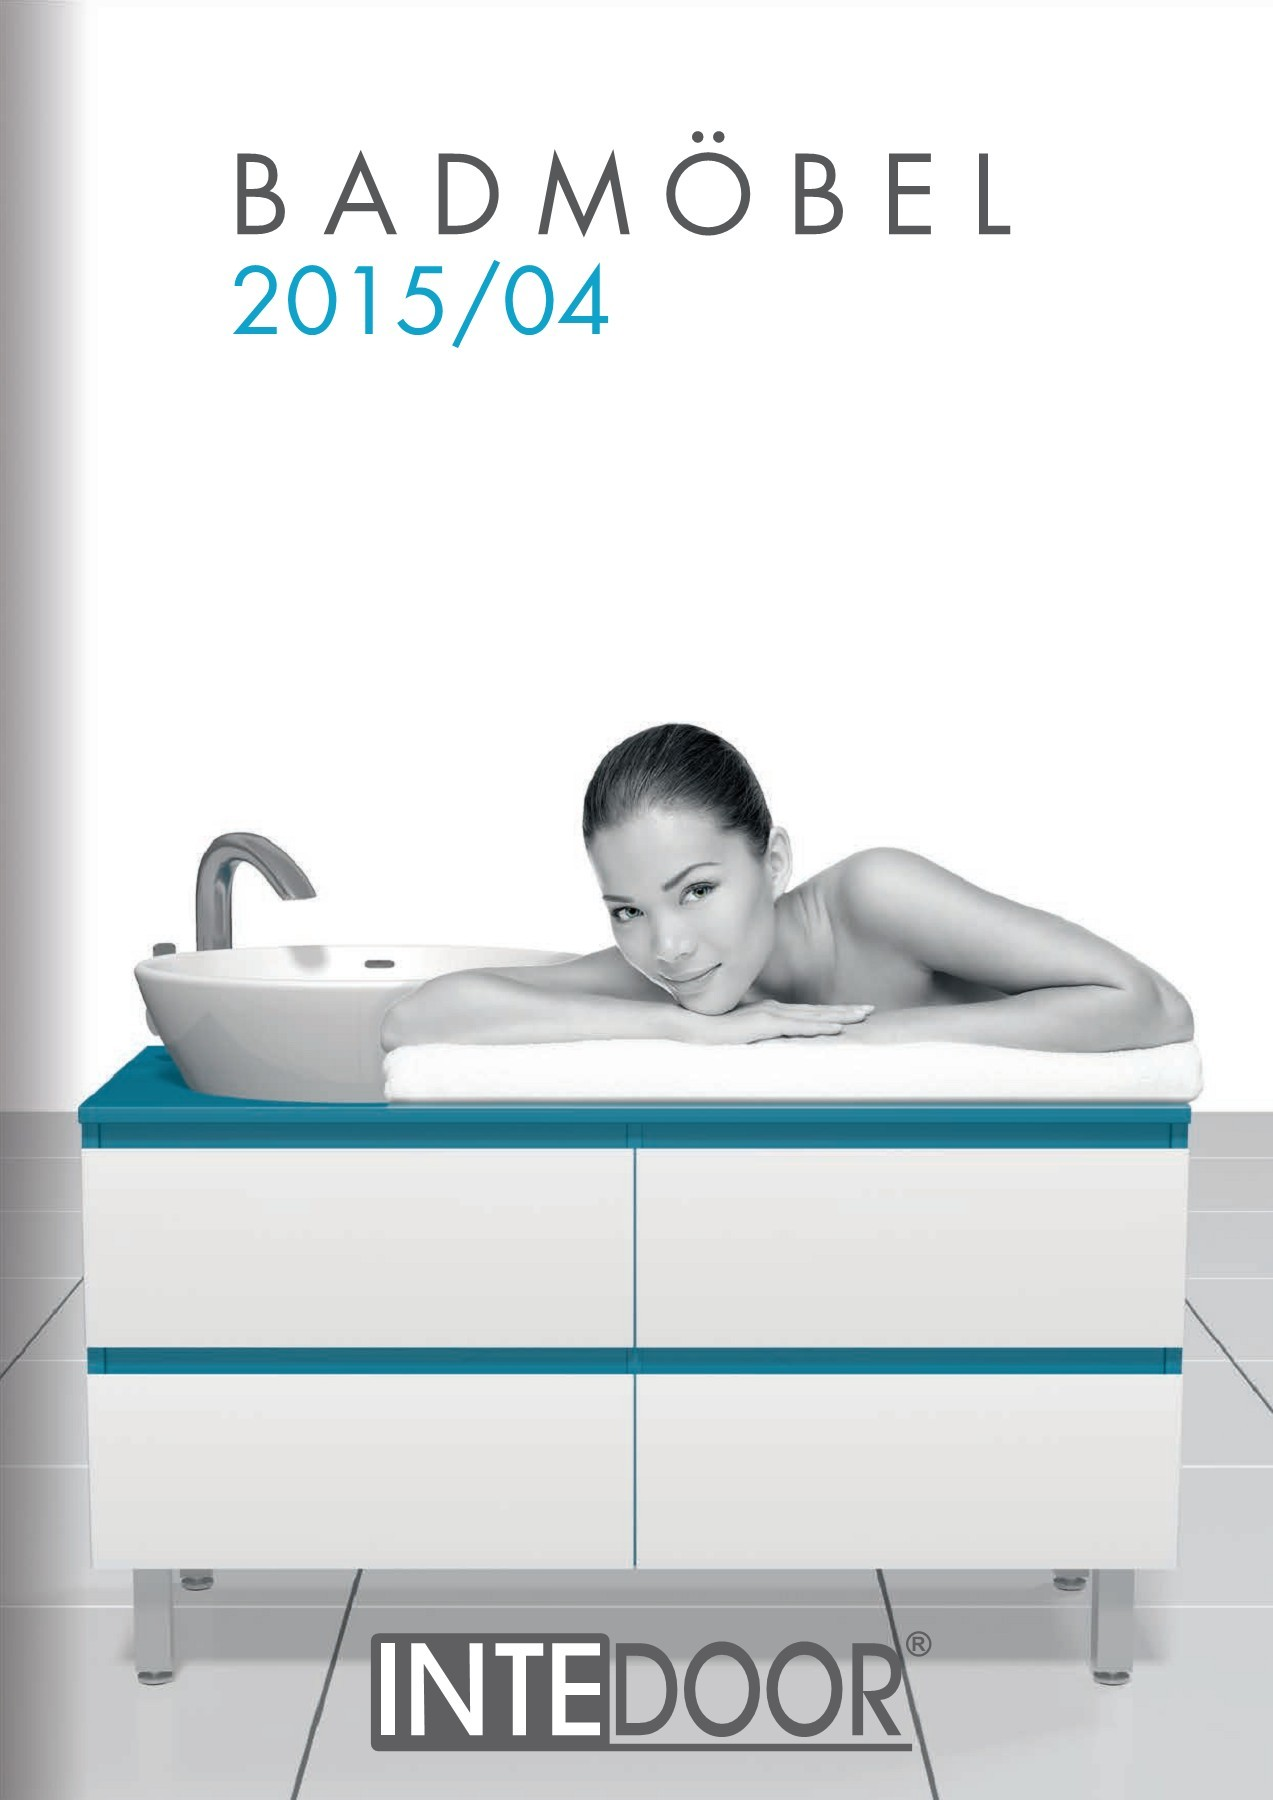 Badezimmer Unterschrank Sanitas Trösch Intedoor Katalog 2015 De Pages 1 50 Text Version Fliphtml5